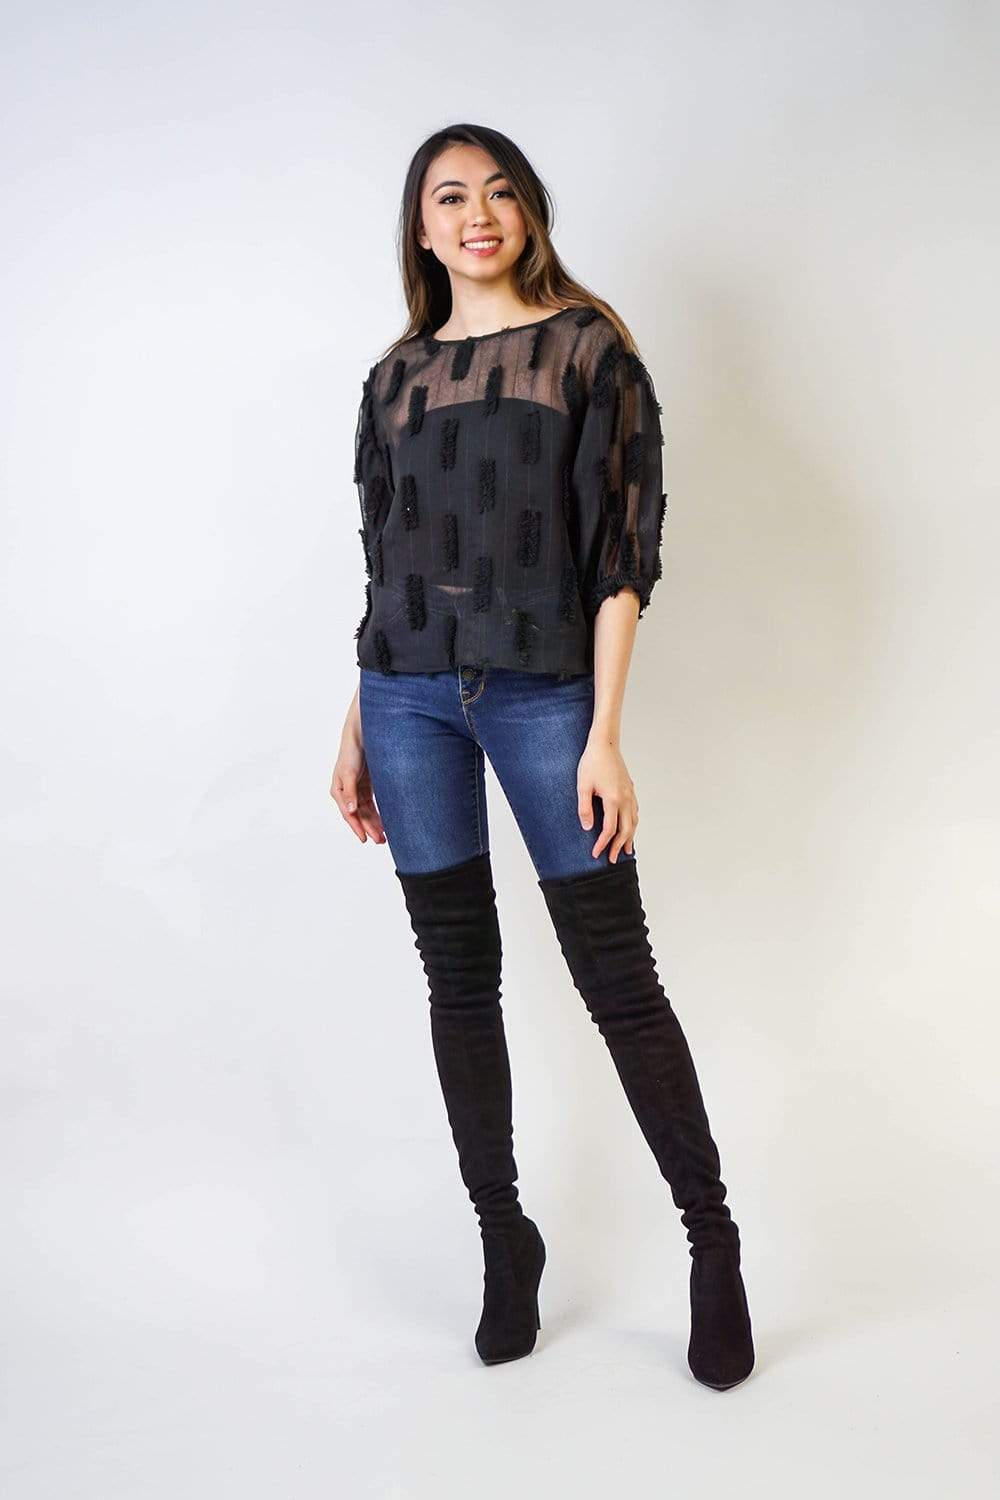 TOPS Black Textured Short Sleeve Blouse - Chloe Dao